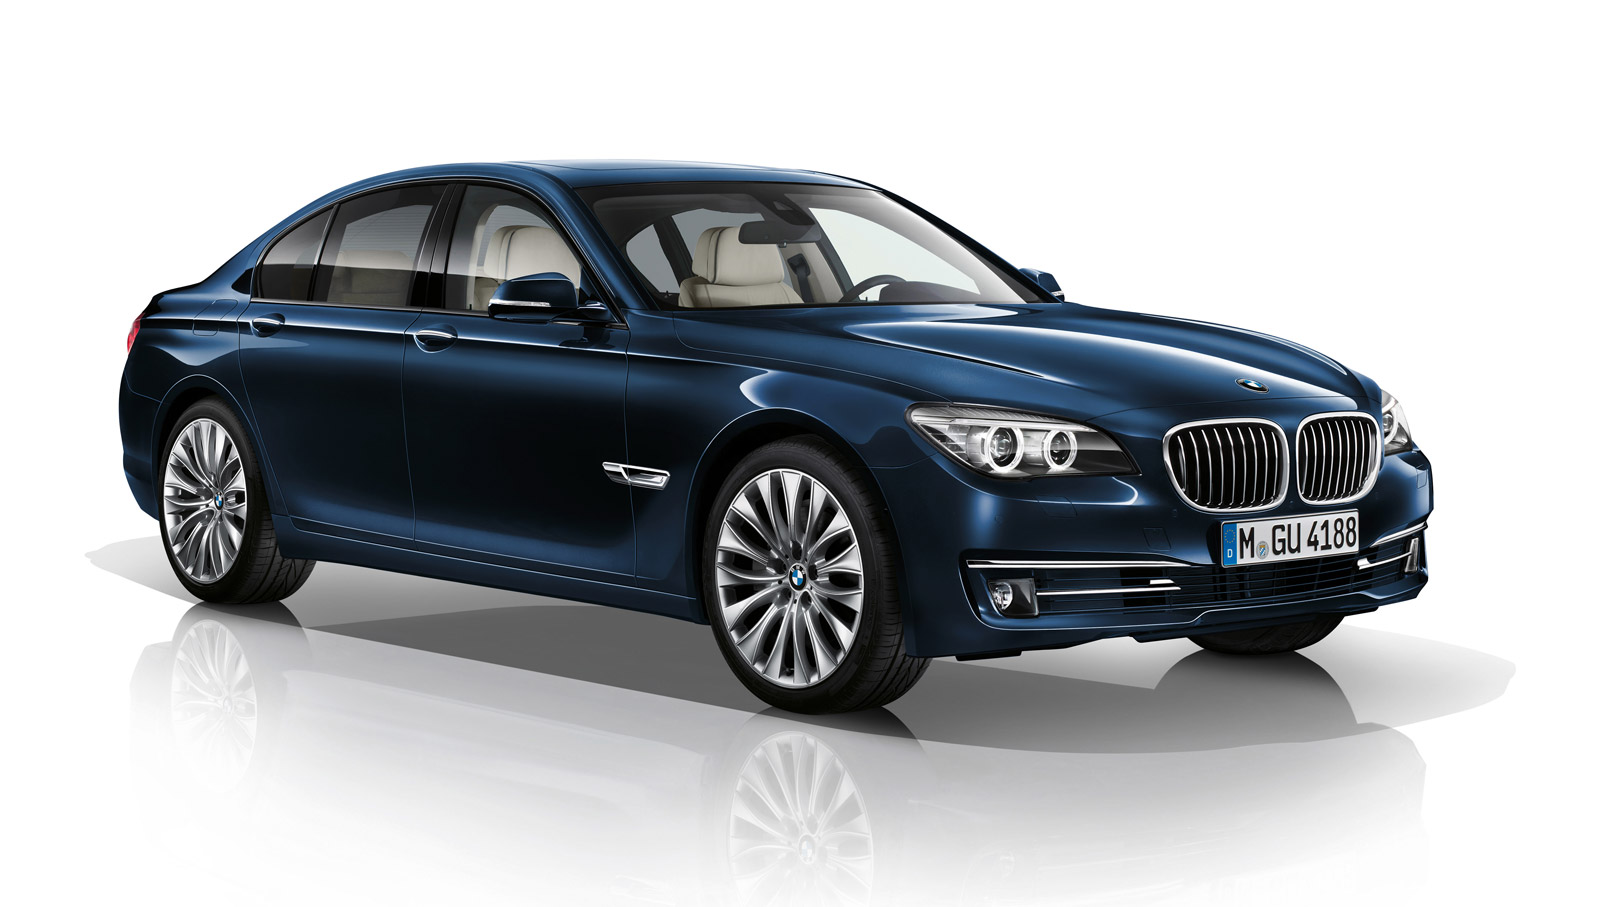 bmw 7 series edition exclusive revealed. Black Bedroom Furniture Sets. Home Design Ideas